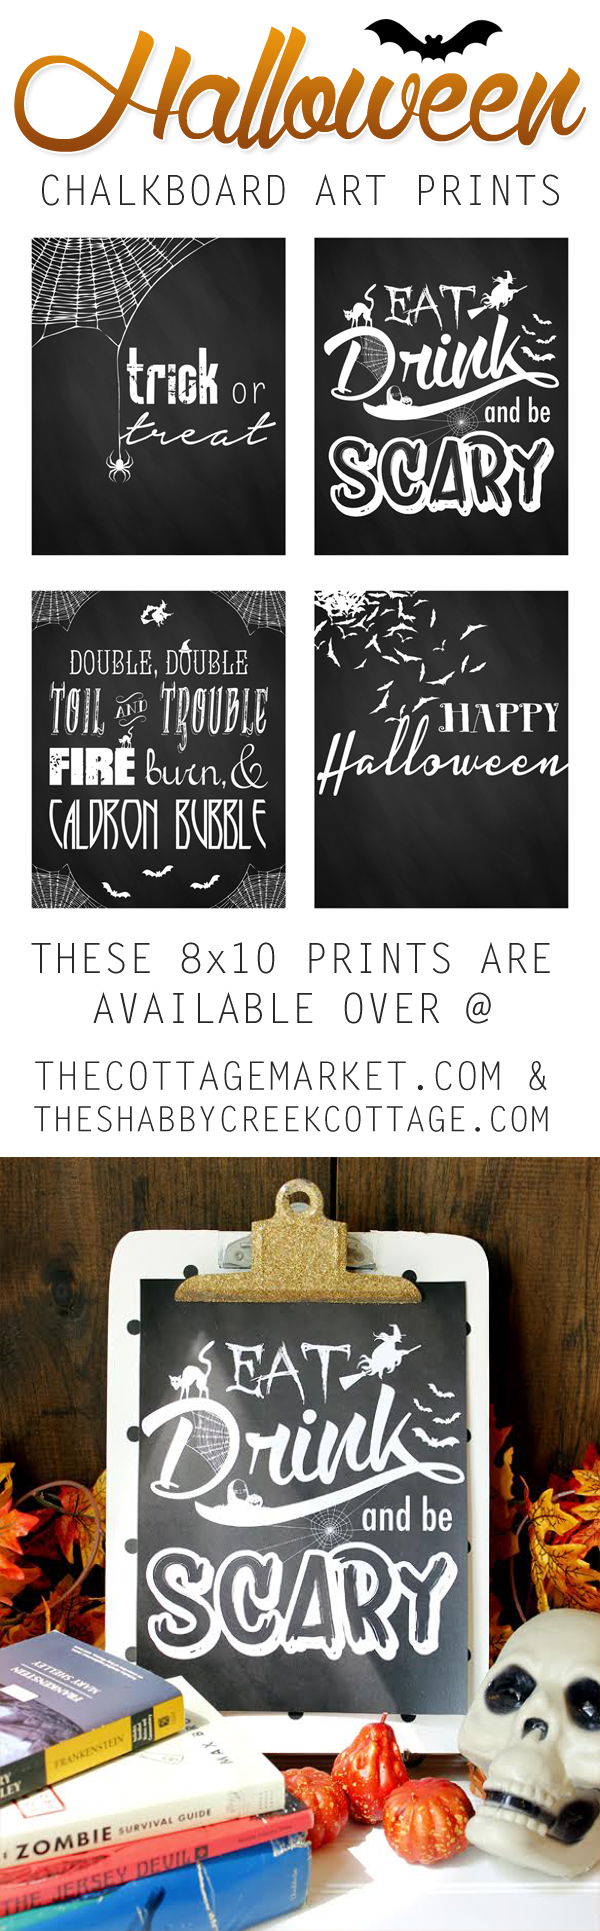 TCM&TSCC-HalloweenChalkboardPrintables-Tower-2